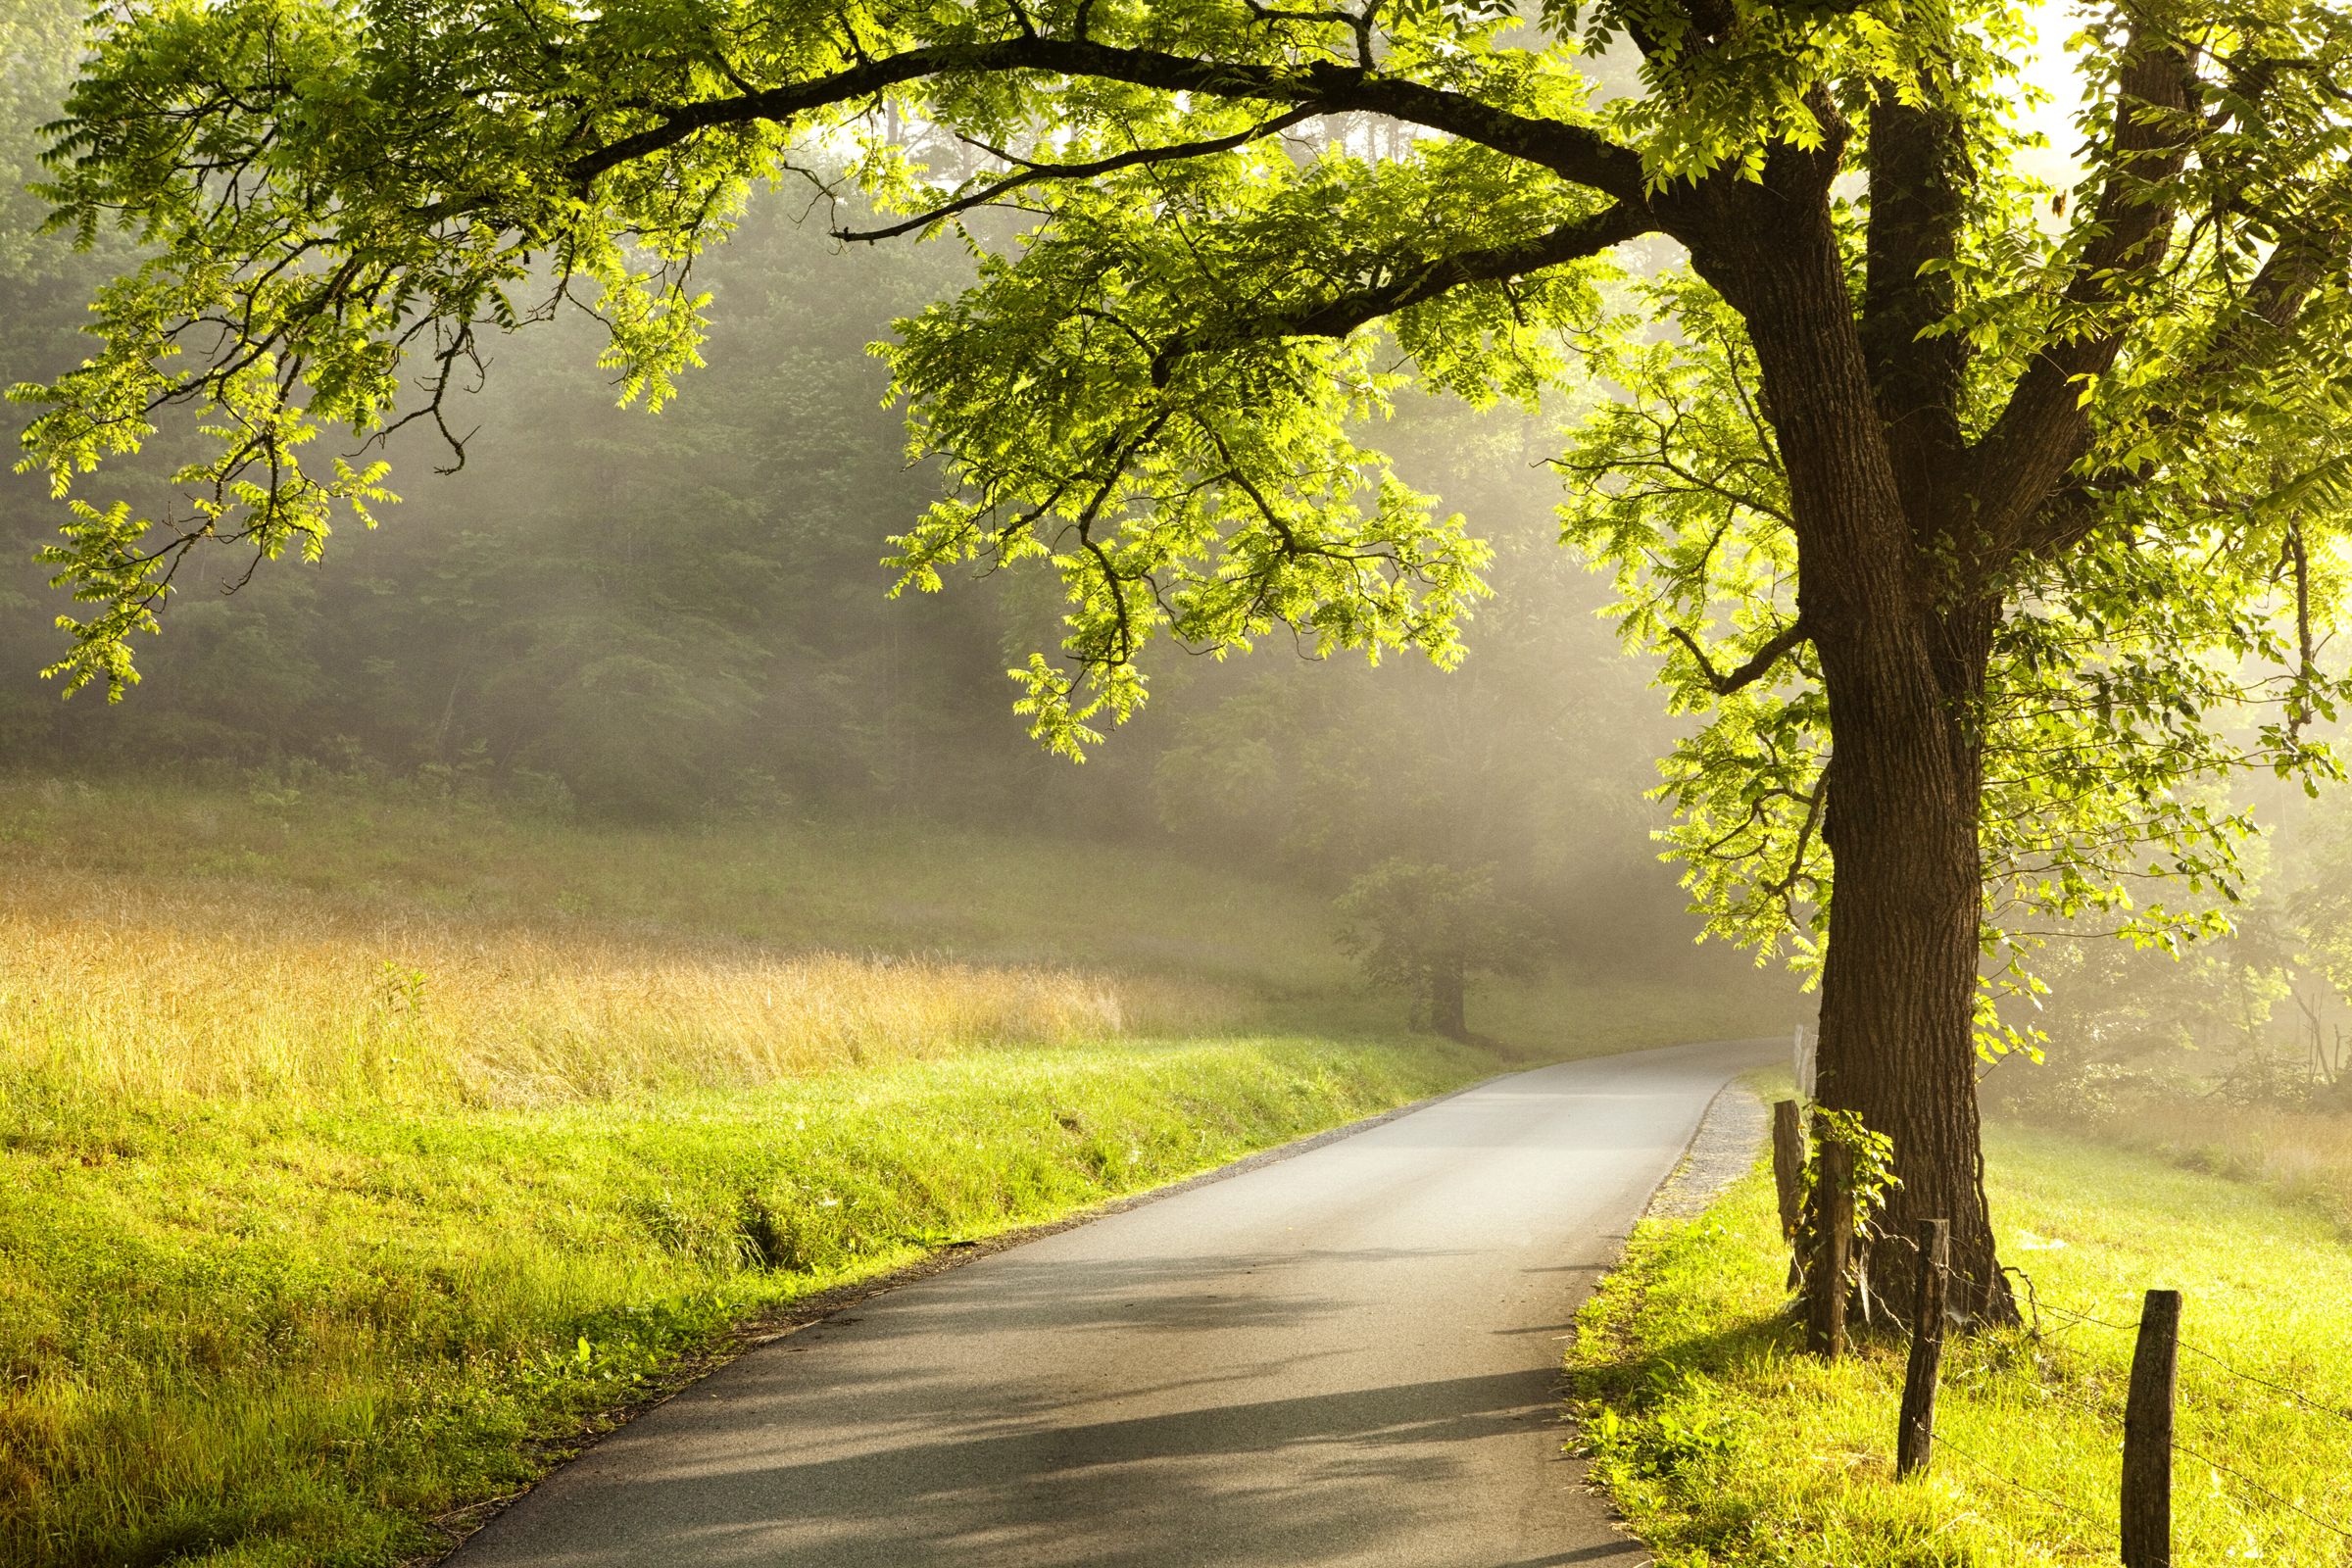 A backlit view of a country road at dawn in Cades Cove in the Great Smoky Mountains National Park.